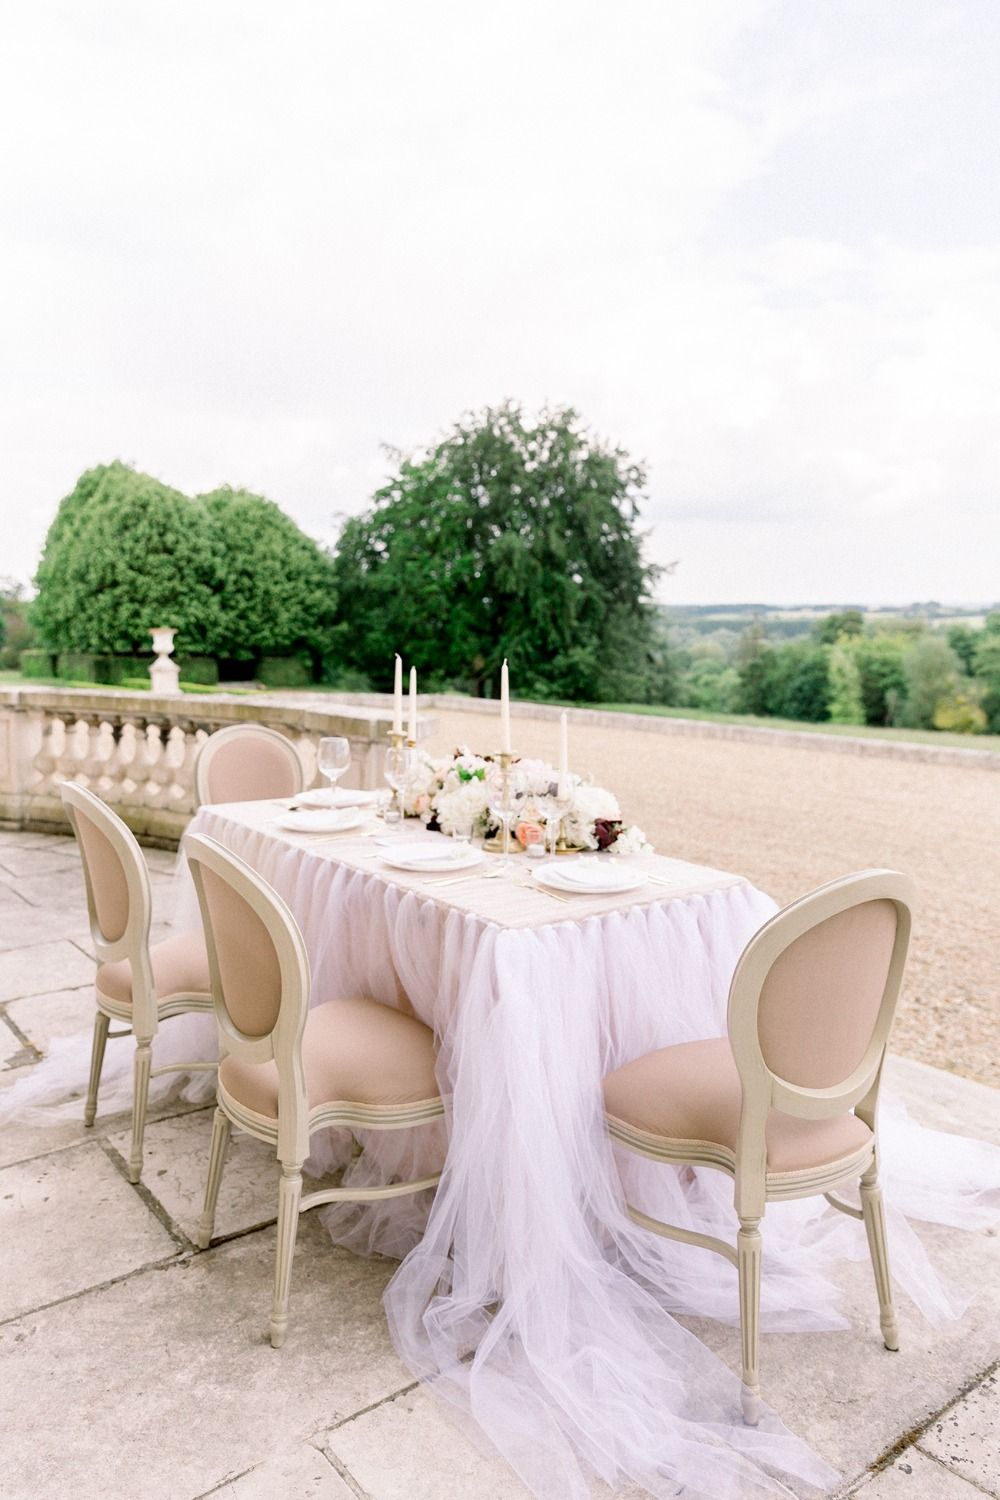 What it would look like if you got married at a french château